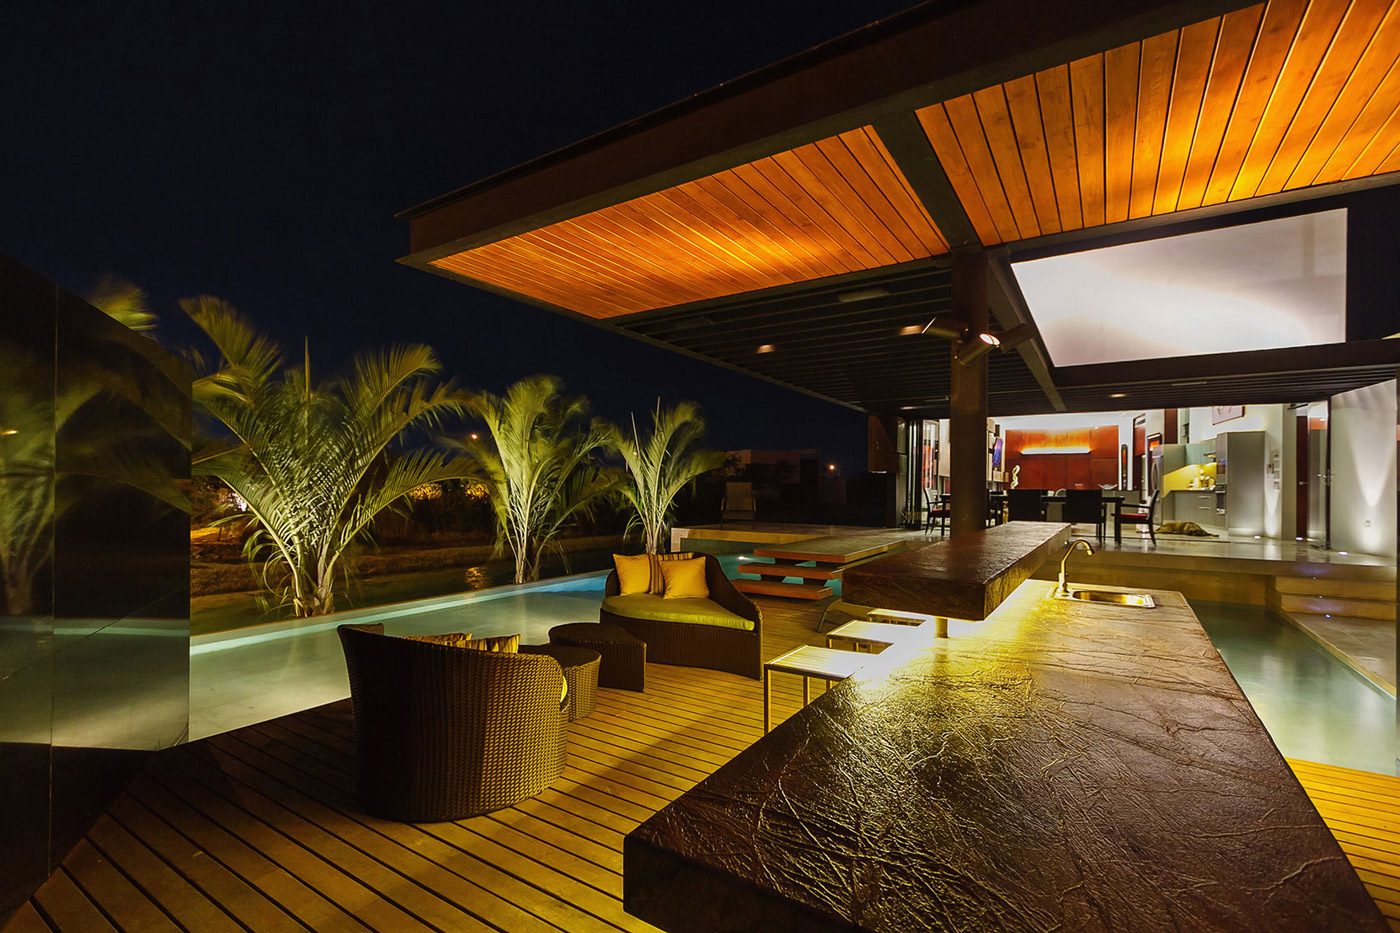 Outdoor Lighting, Pool, Bar, Terrace, Contemporary Residence in Merida, Yucatan